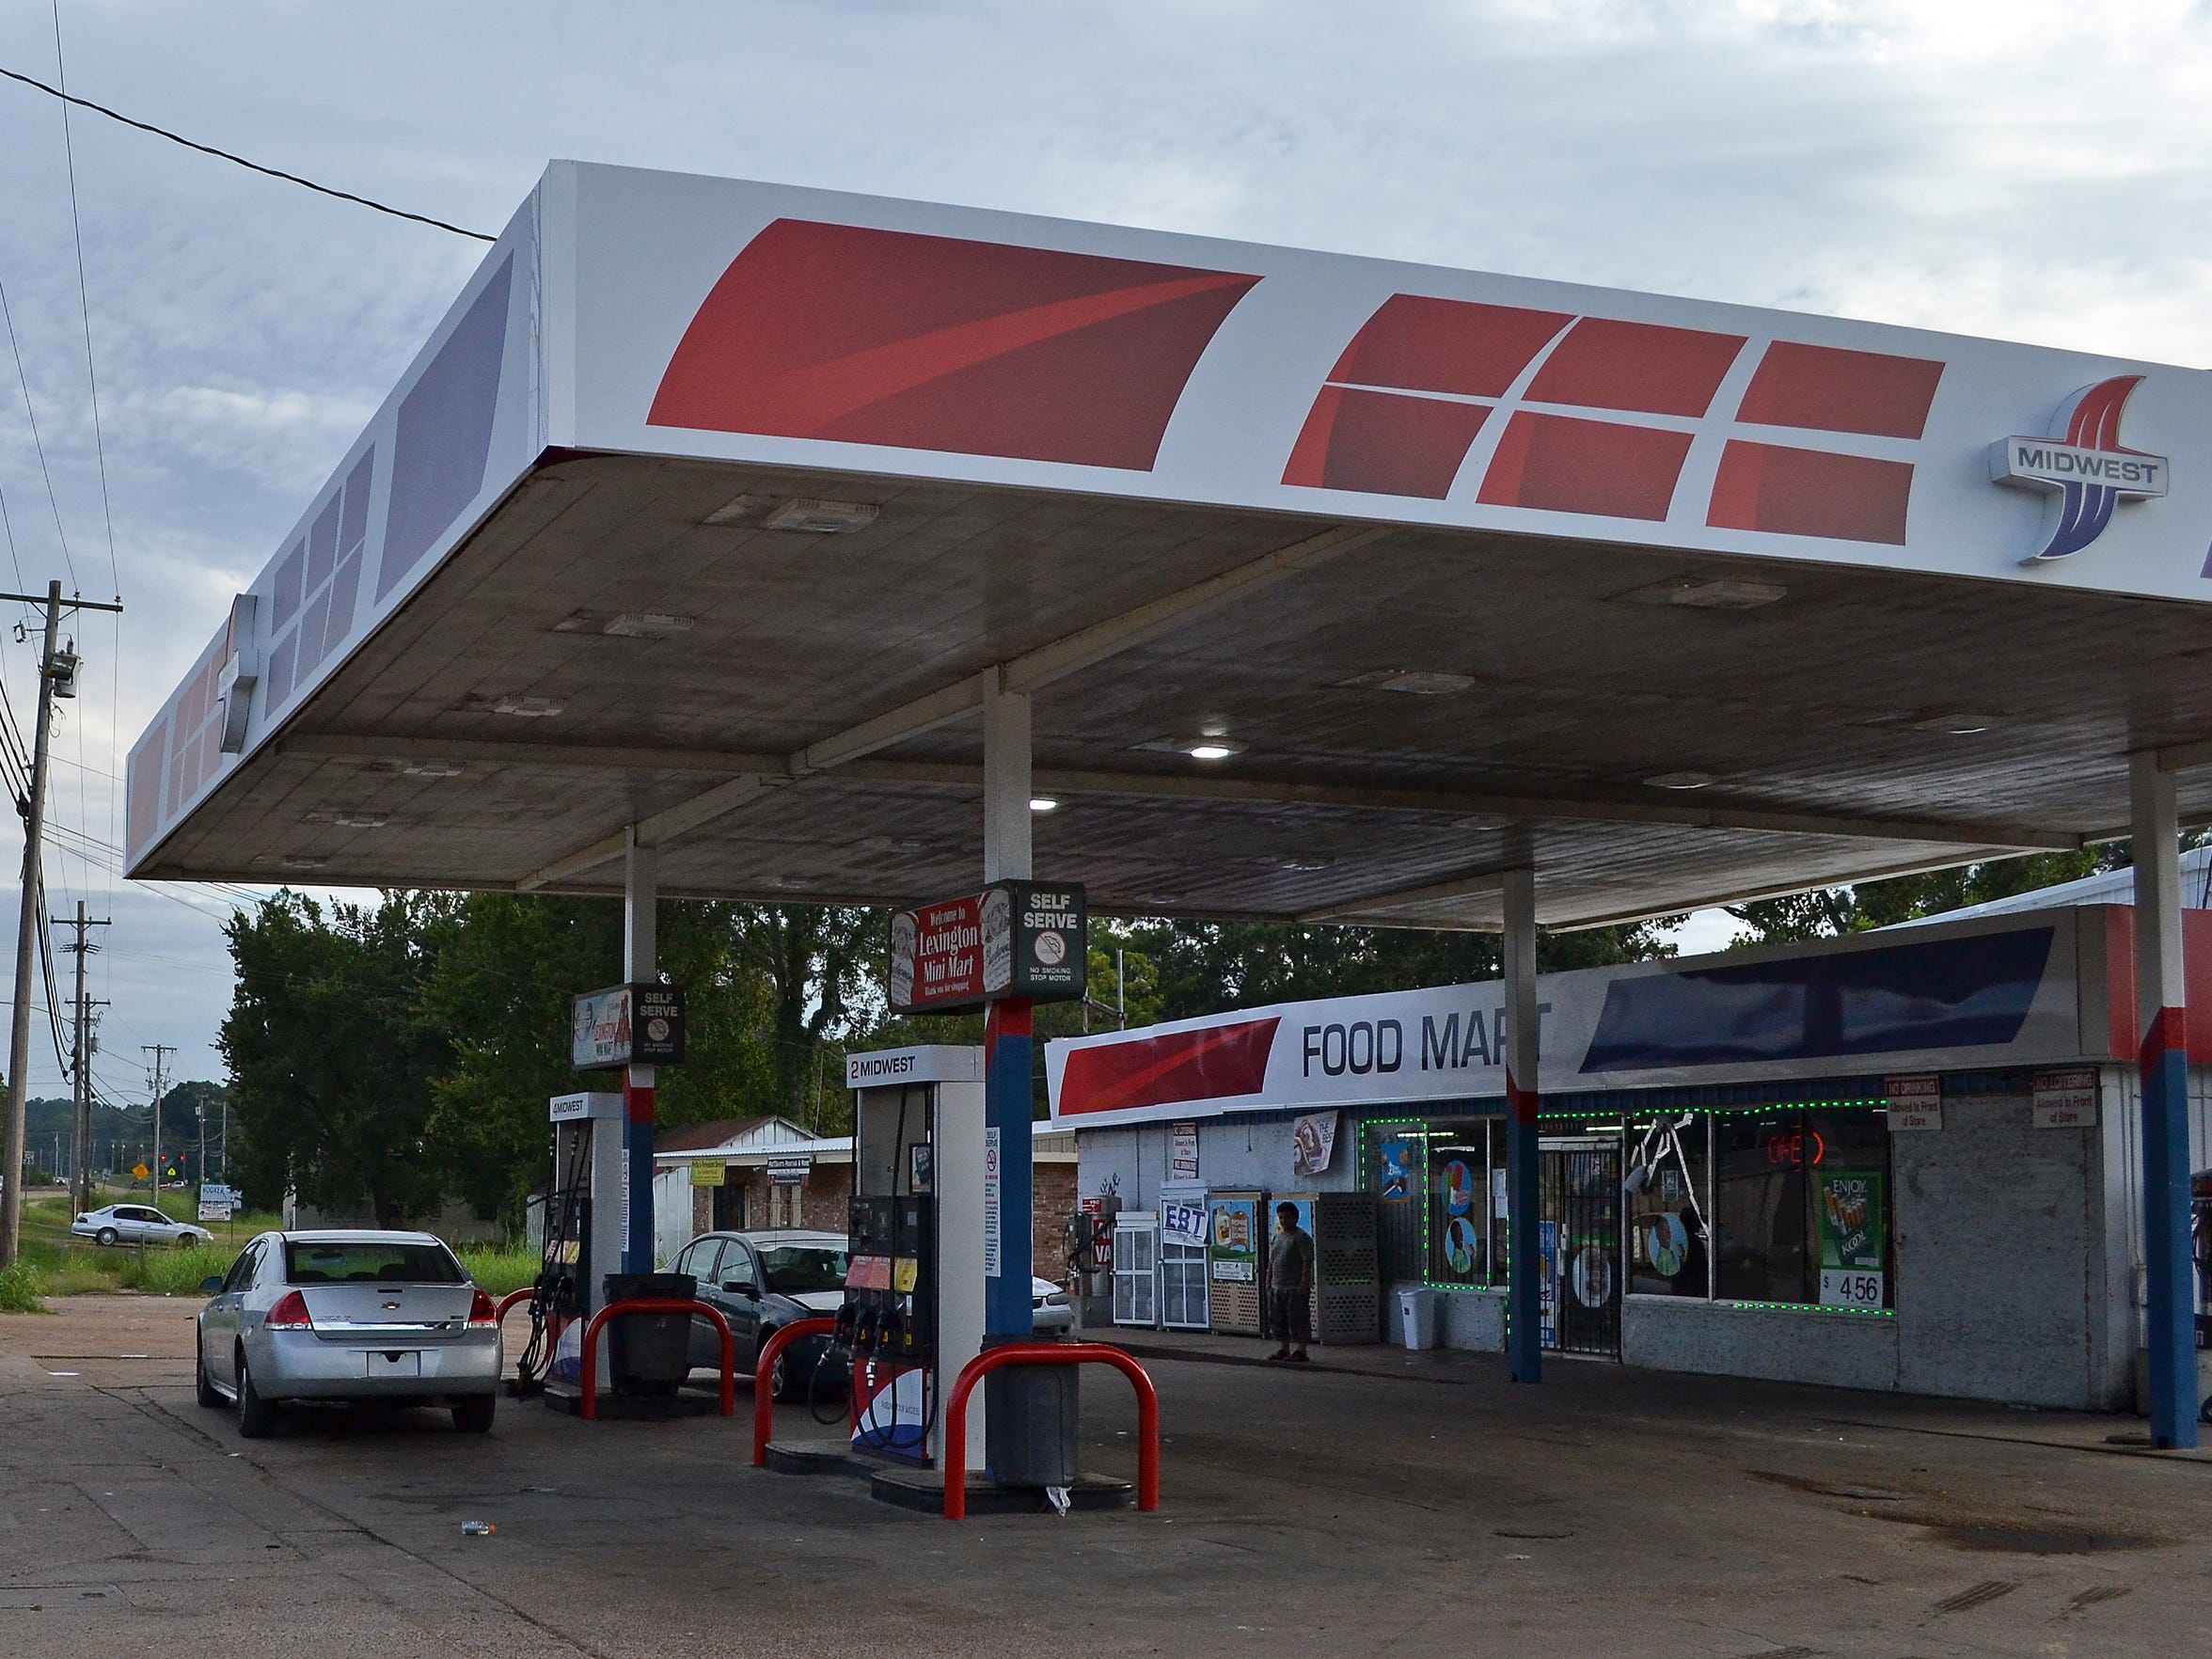 Corner stores in Holmes County outnumber grocery stores